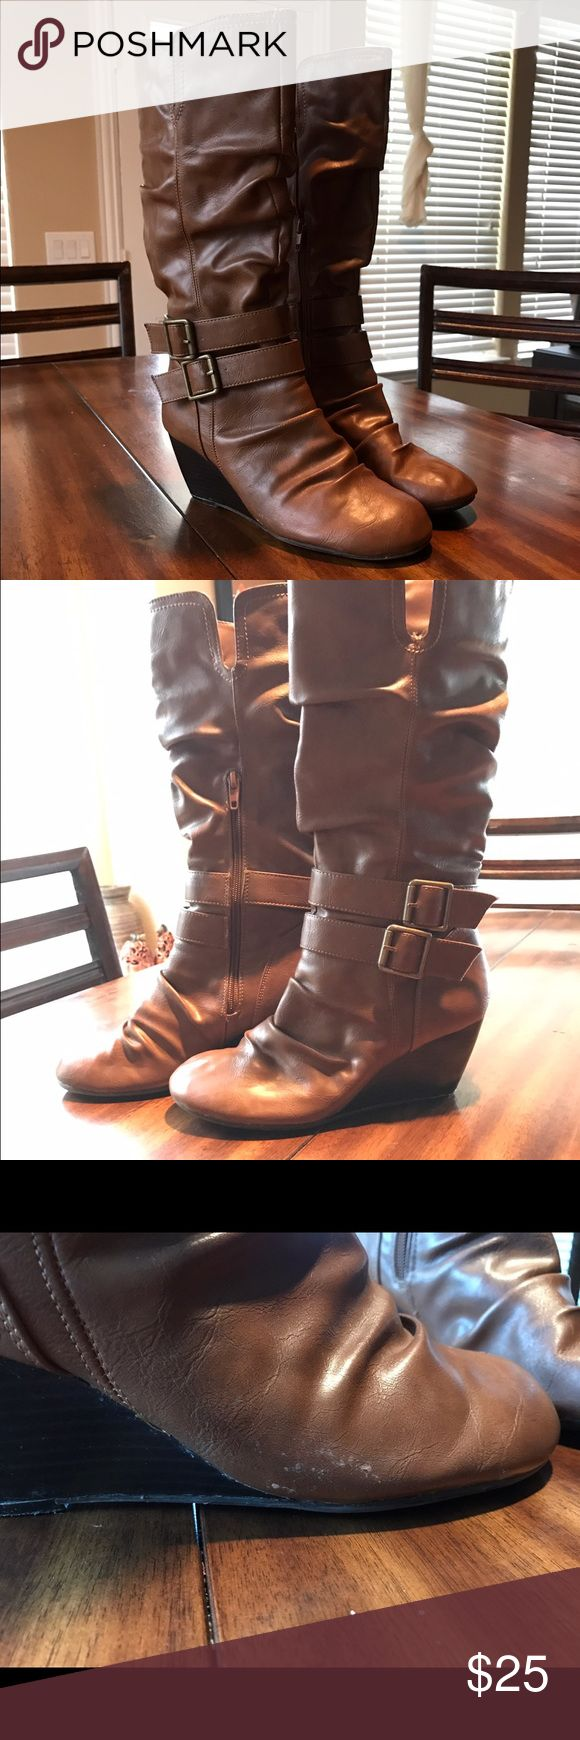 Brown wedge slouchy boots Brown wedge slouchy boots, minimal scuff as seen in the pictures. EUC Shoes Heeled Boots